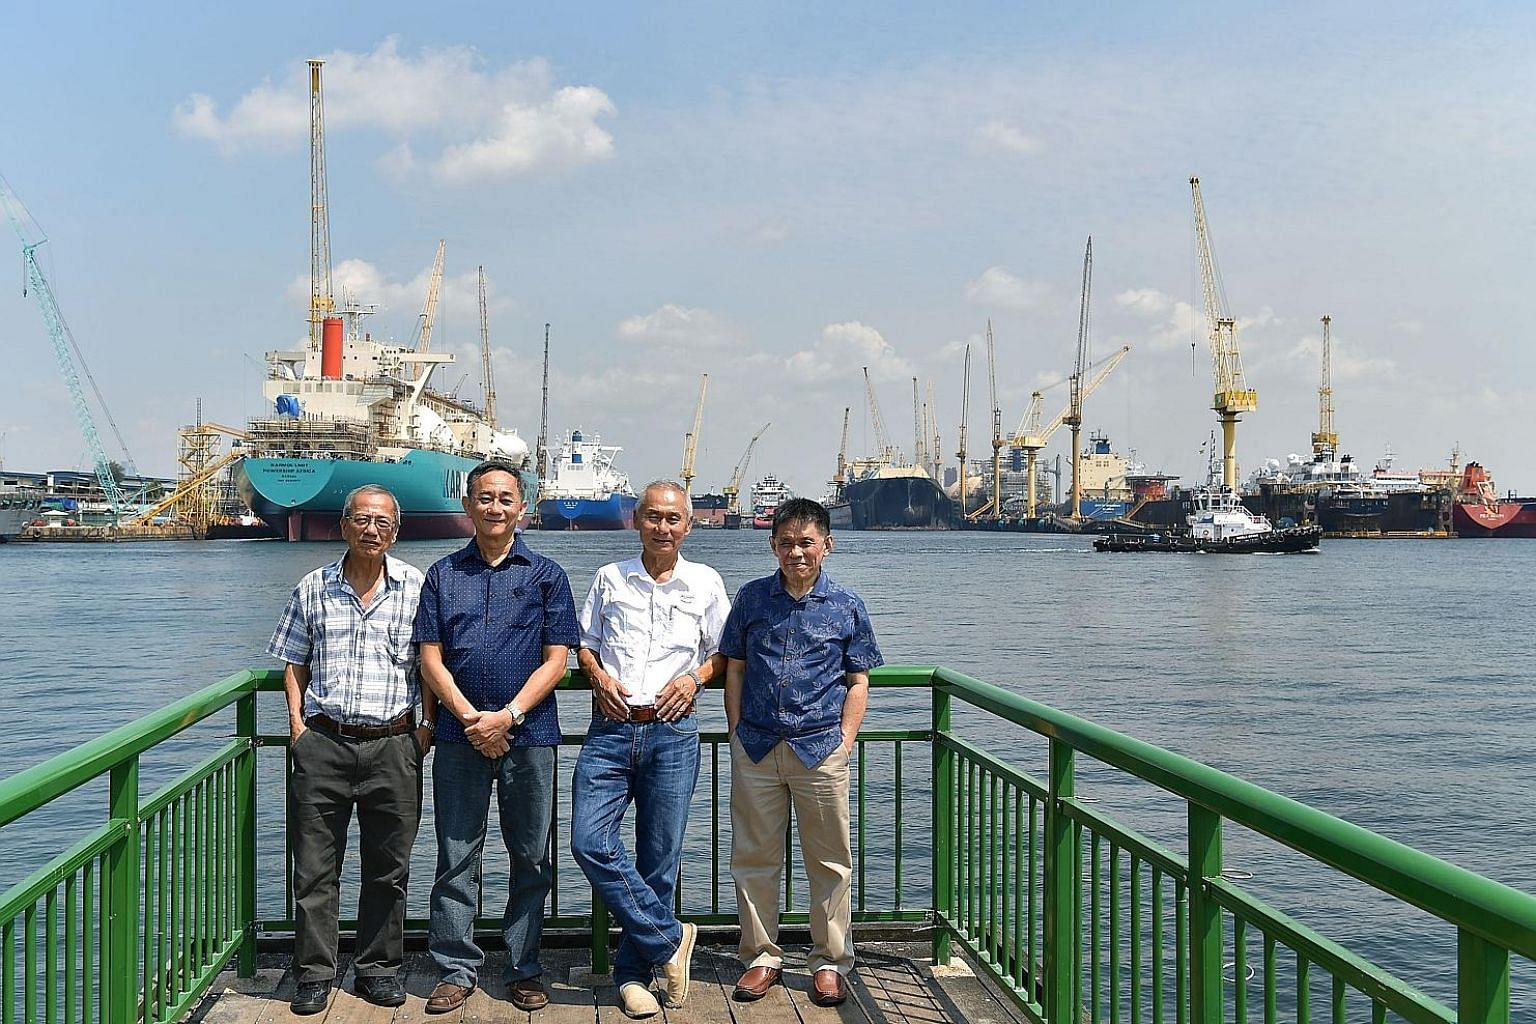 (From left): Mr Lai Pak Shen, Mr Eugene Koh, Mr Wong Fook Seng and Mr Foo Say Nong were all participants in Sembawang Shipyard's apprenticeship programme which ran from 1969 to 1973, during the critical years of Singapore's push towards industrialisa